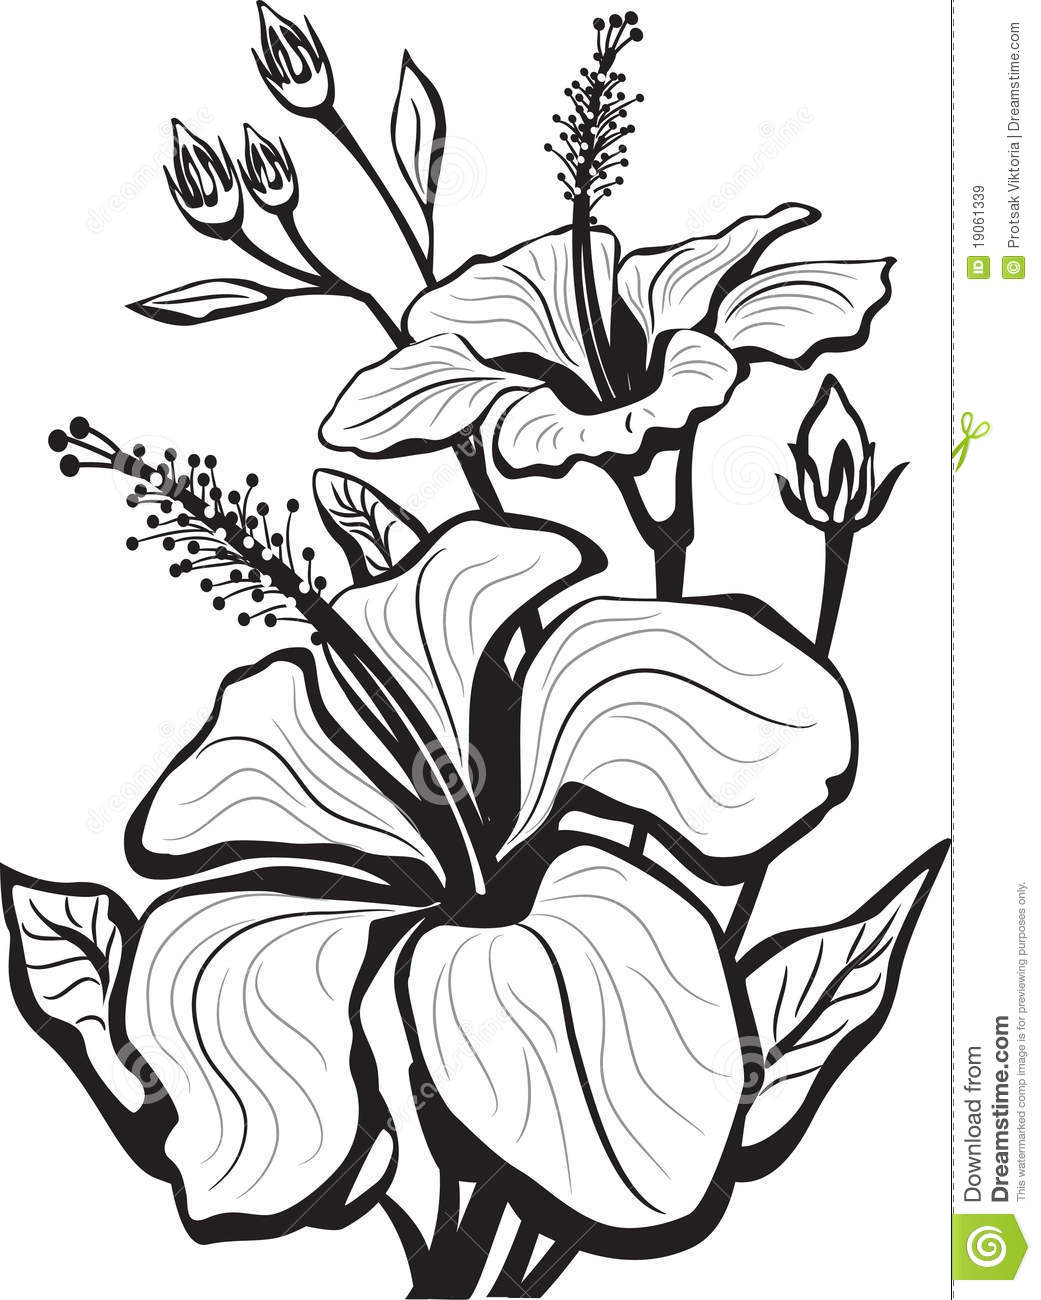 Sketch Of Hibiscus Flowers Royalty Free Stock Images